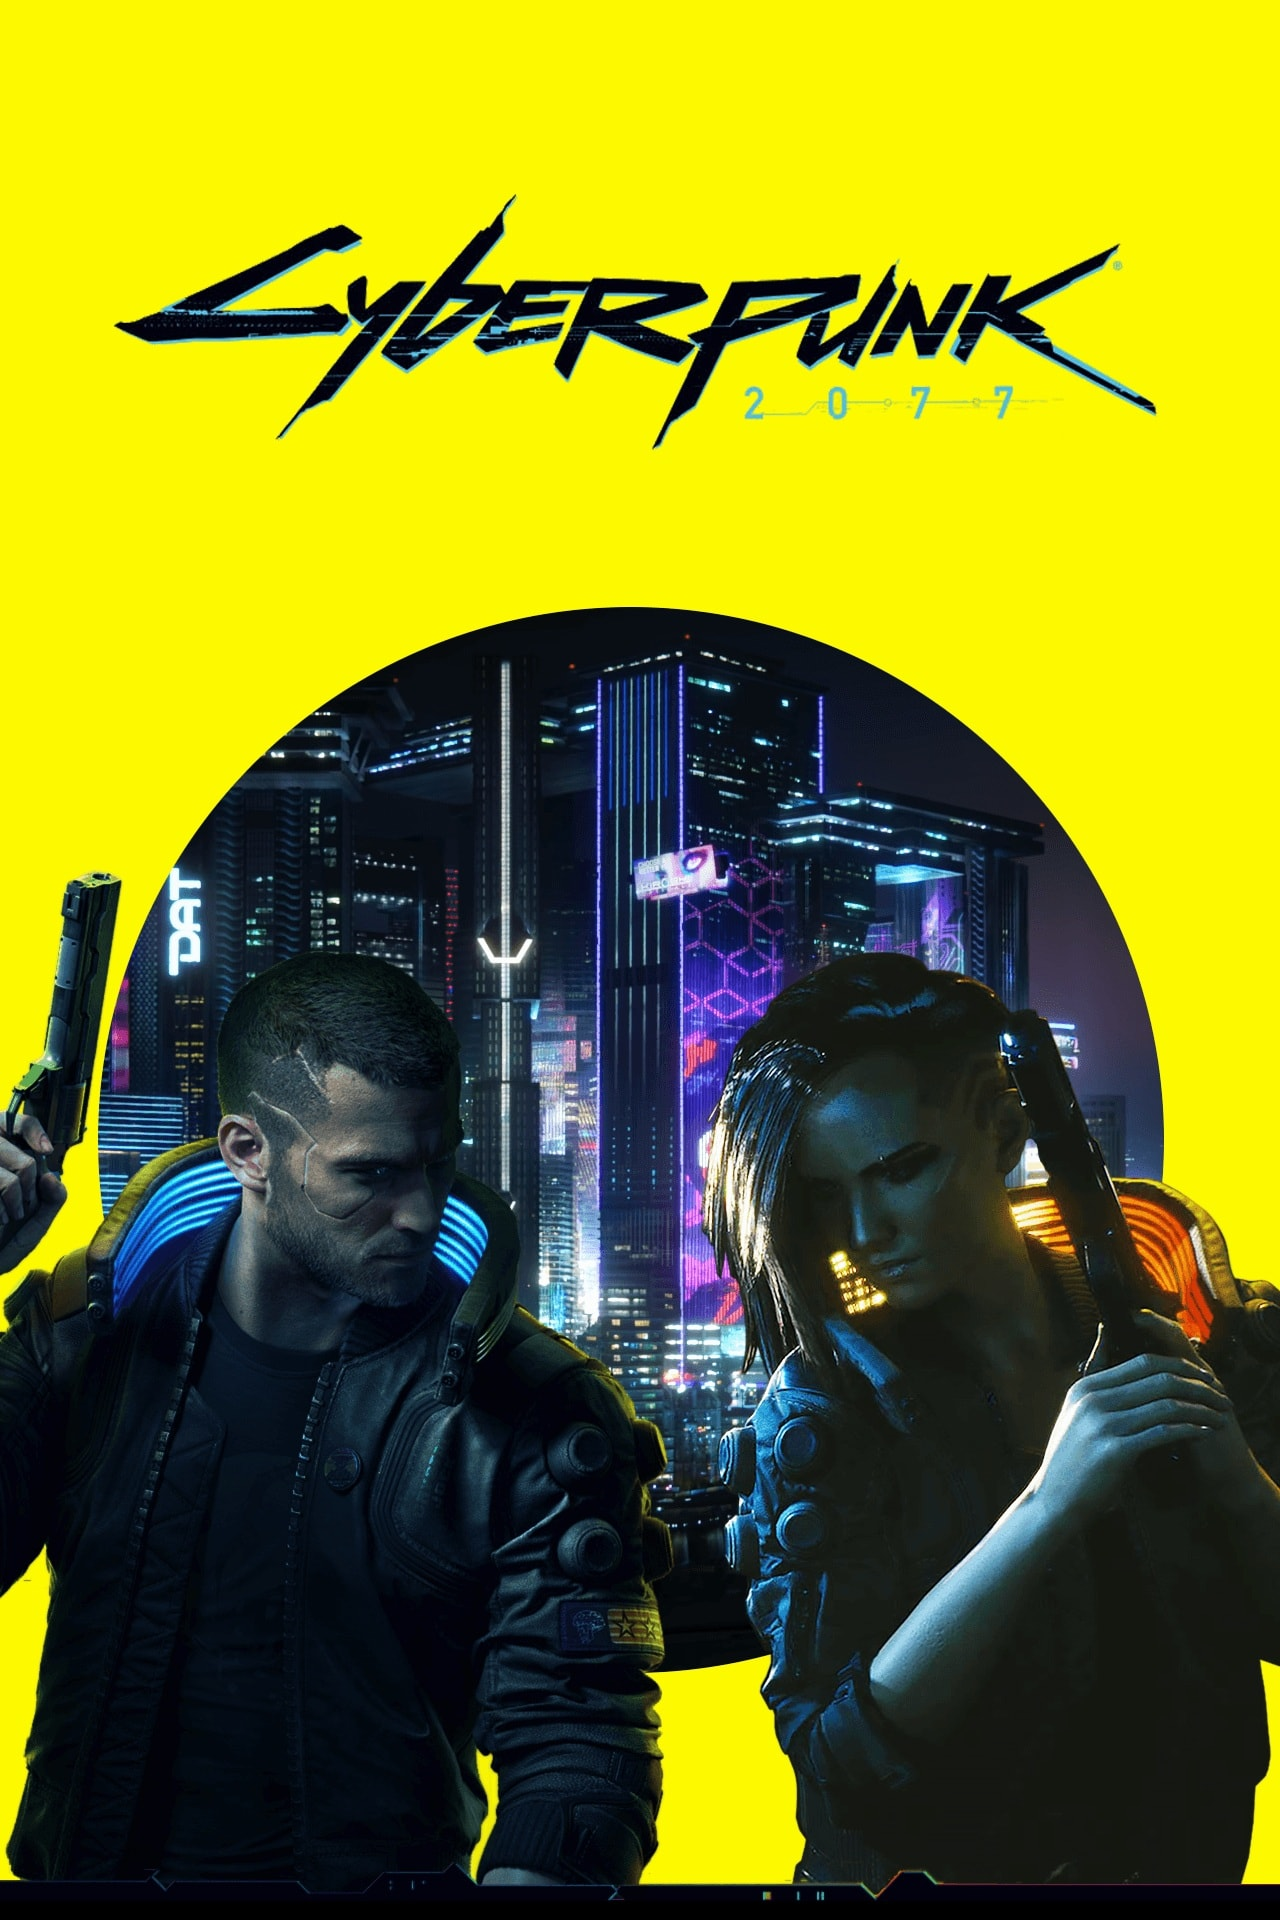 Cyberpunk 2077 Wallpaper Android - KoLPaPer - Awesome Free ...